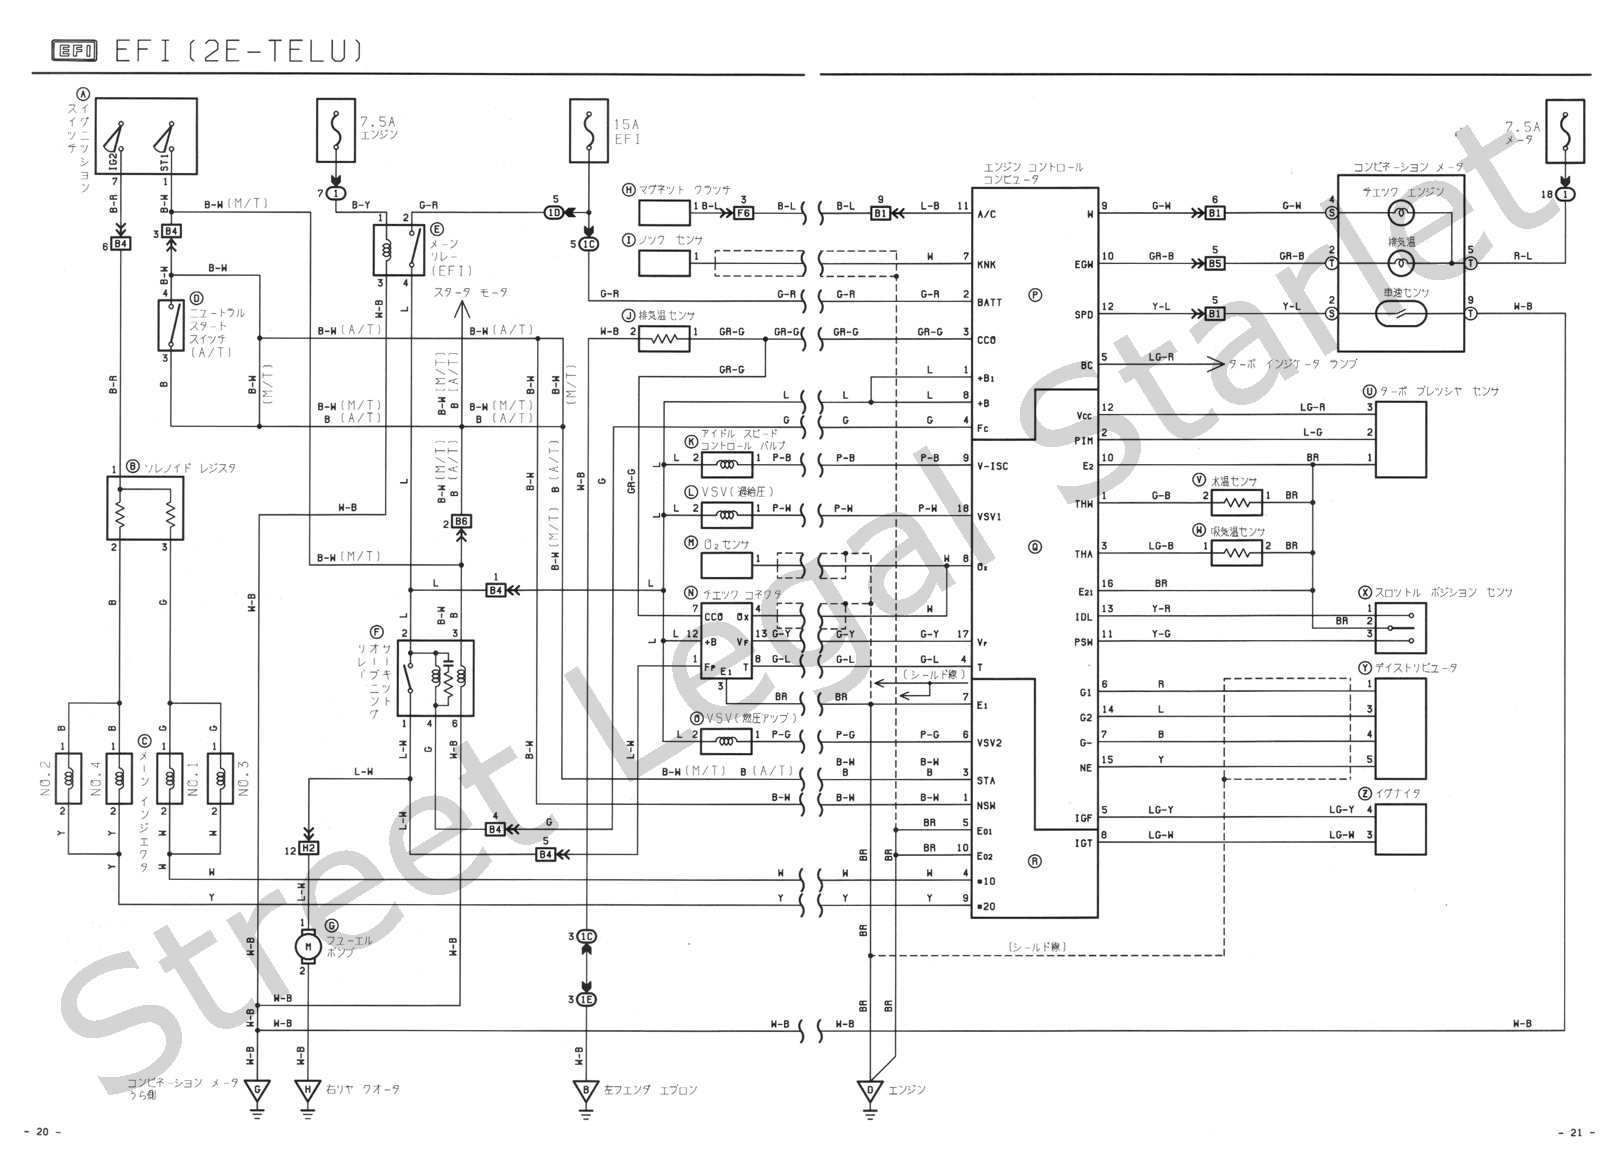 Wiring Diagram Of Toyota Vios Page 4 And Schematics Innova Ecu Pin Out Gt Turbo Rh Toyotturbo Com Pinout